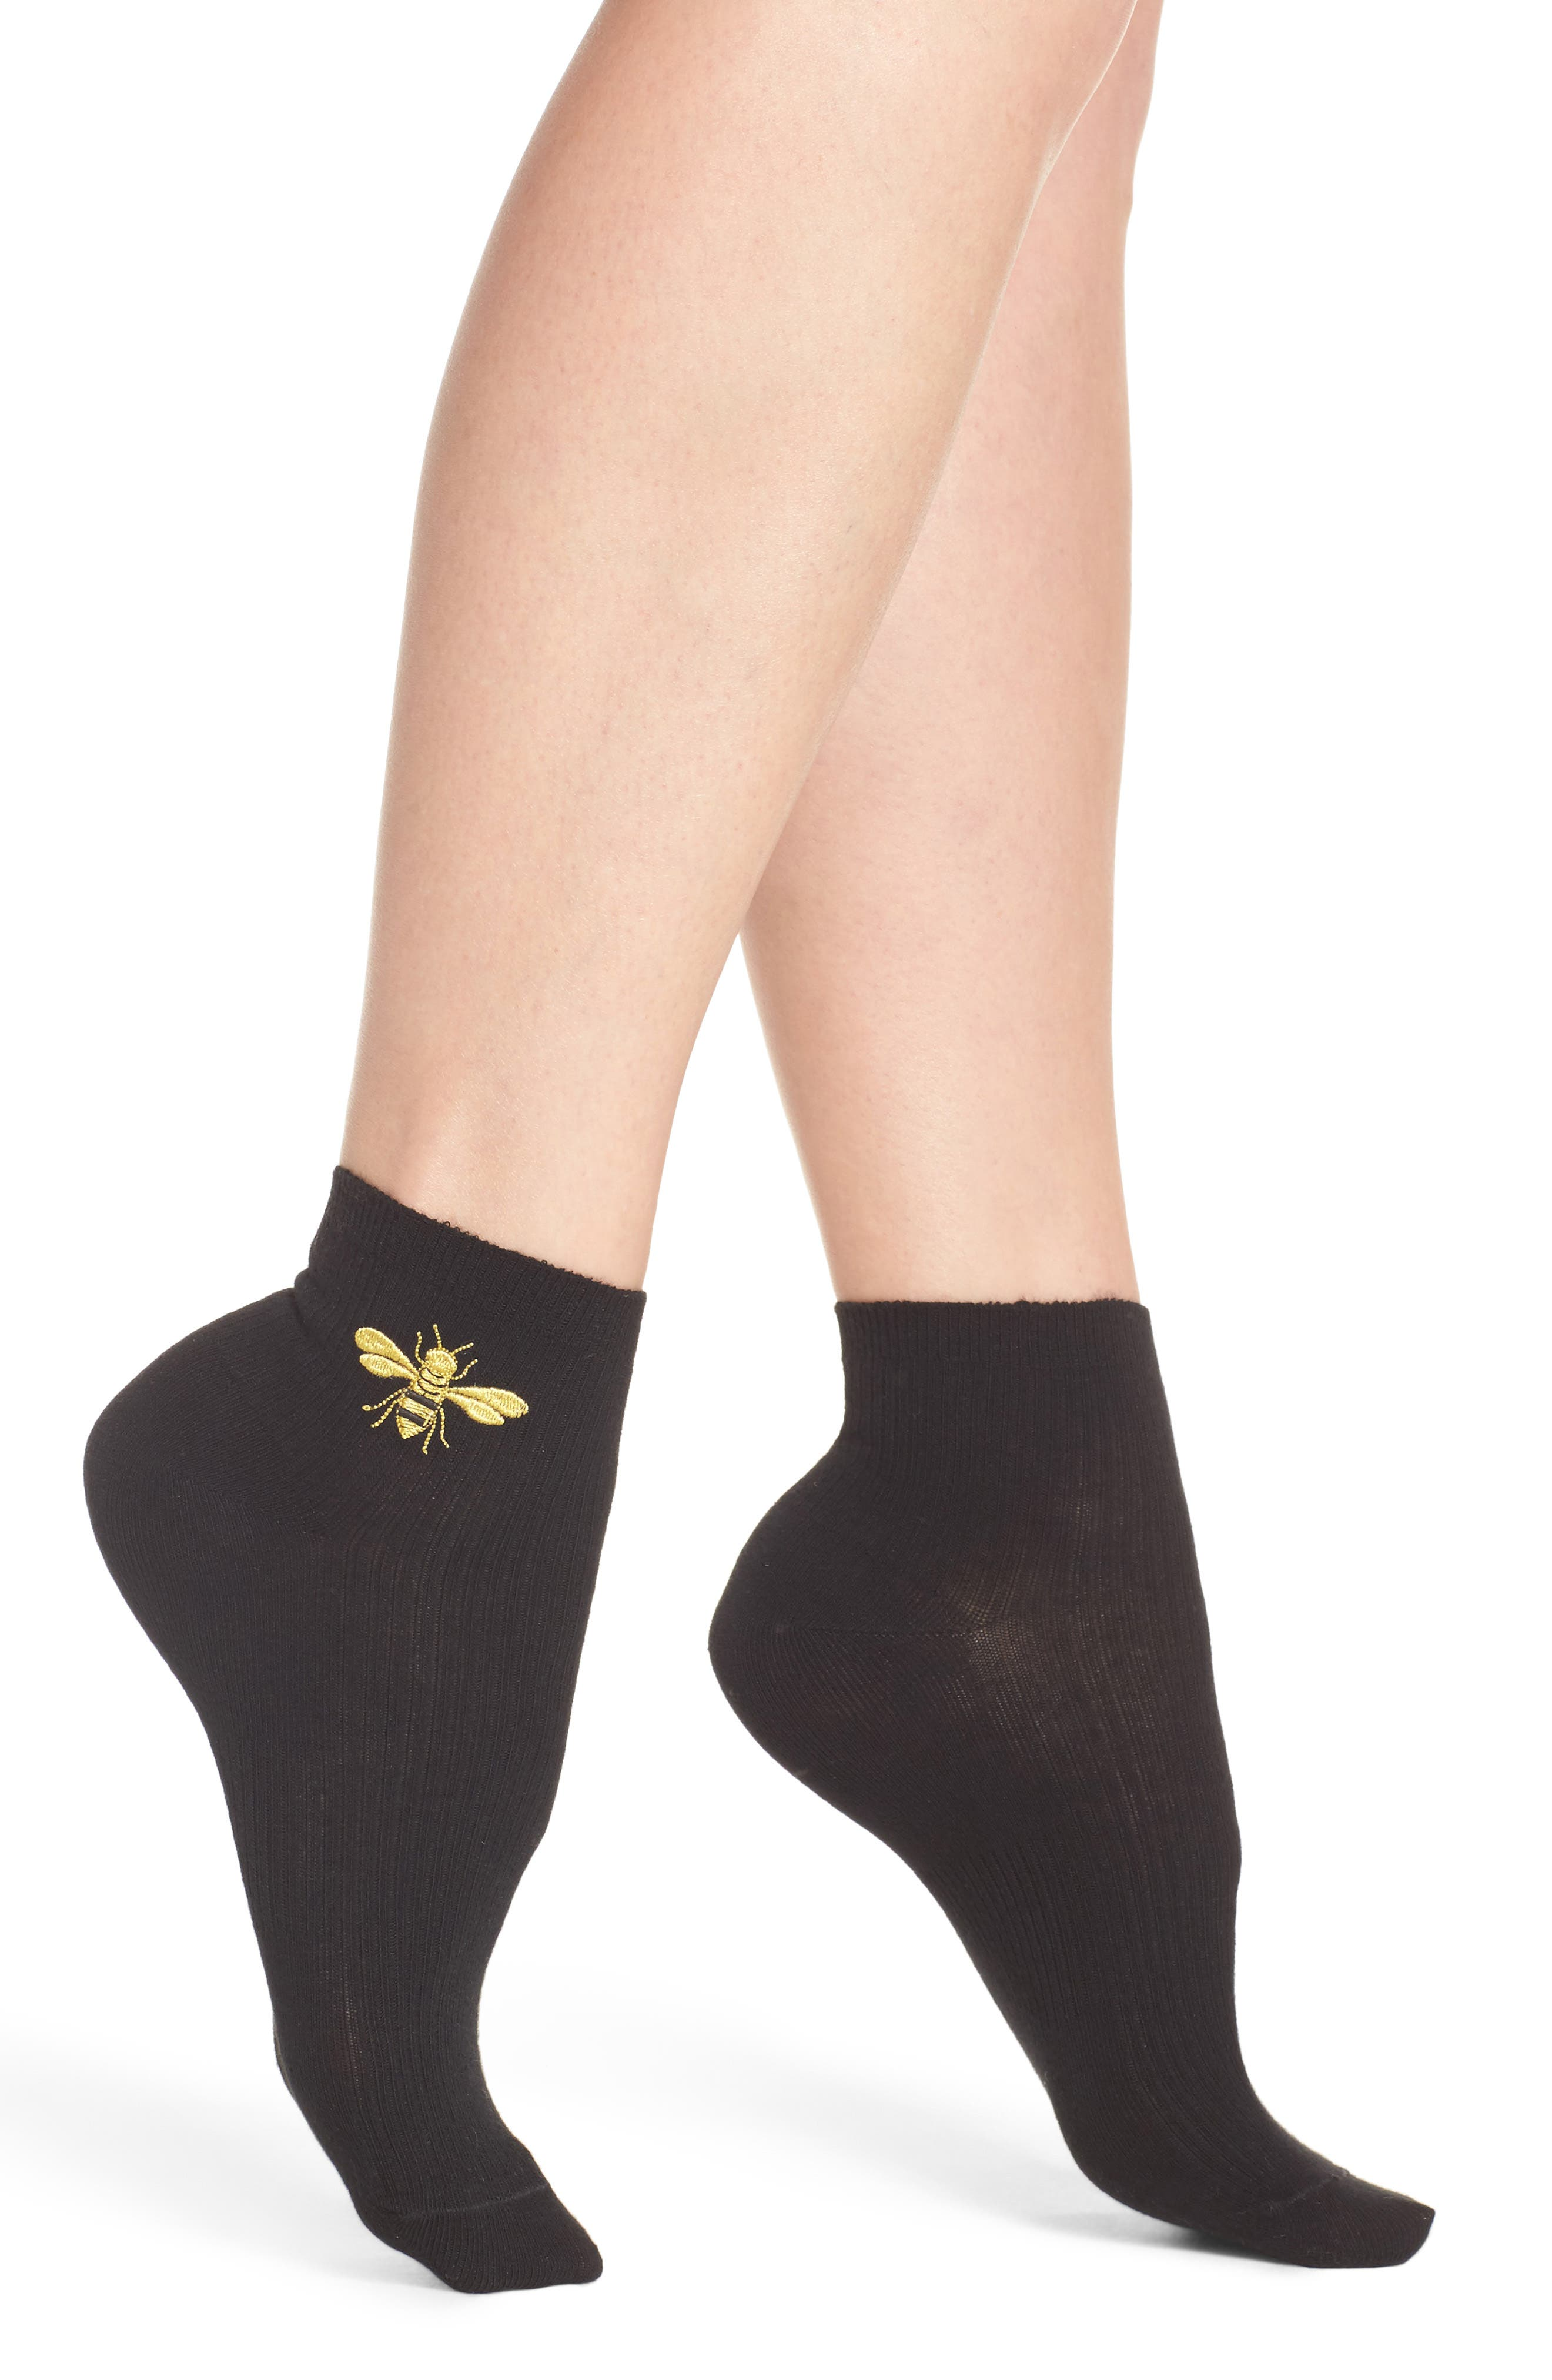 Embroidered Ankle Socks,                             Main thumbnail 1, color,                             001